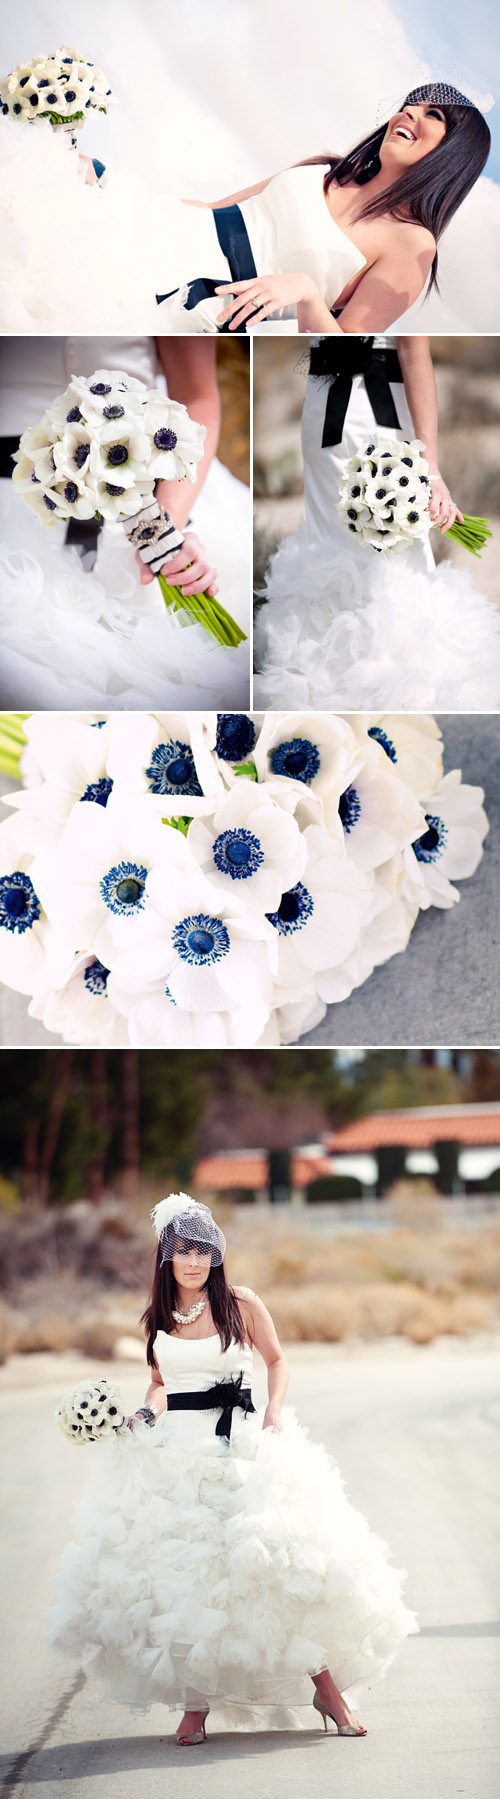 modern anemone bridal bouquet by Bella Signature Design, photos by Latasha Haynes Photography, Holly Clarke Photography, tPoz Photography and Poly Mendes Photography